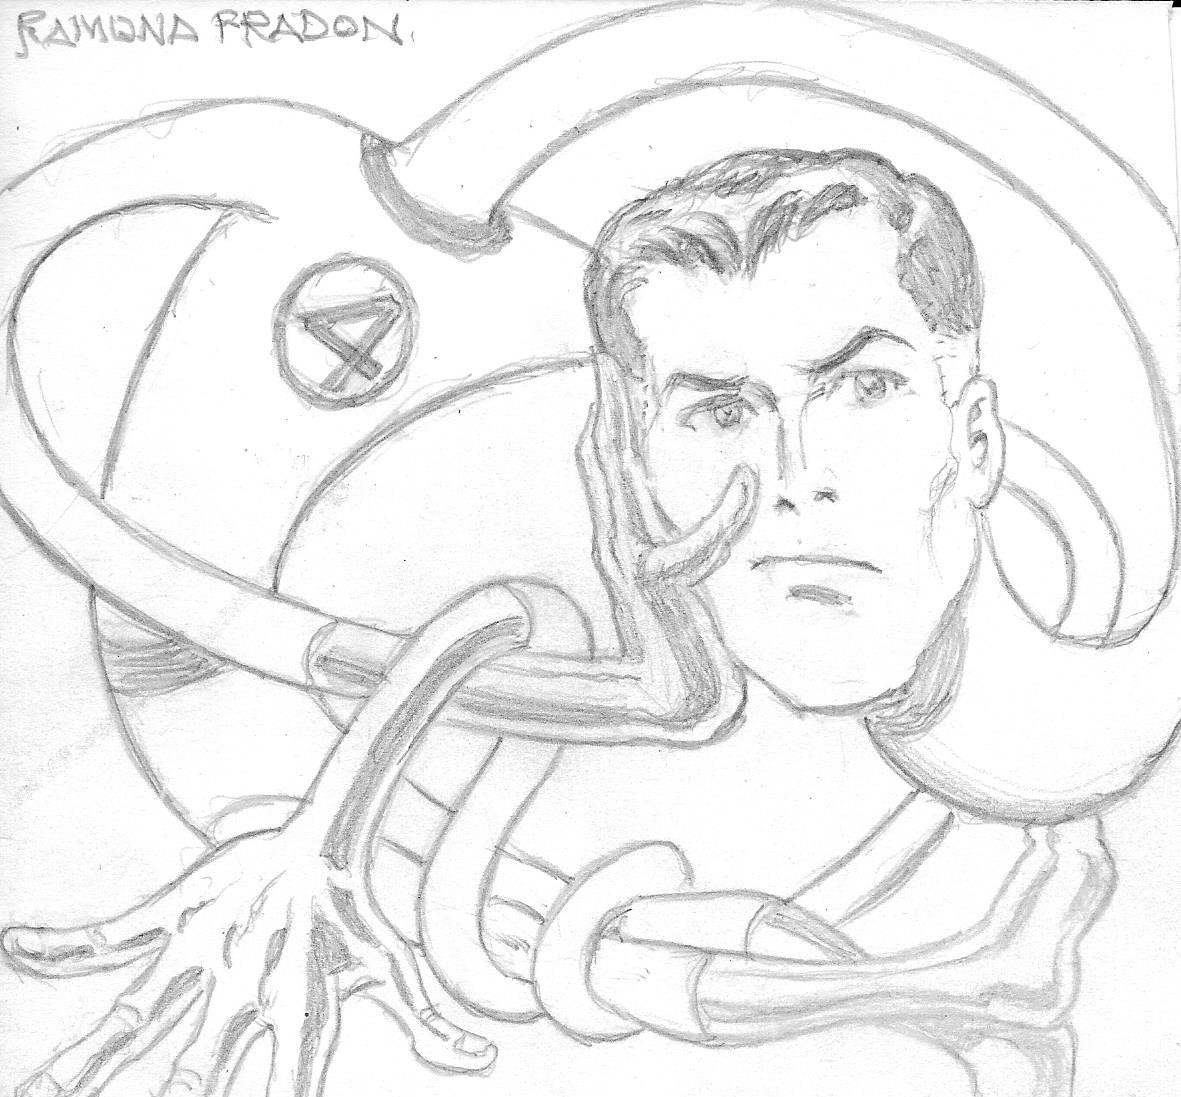 Mr Fantastic Of Fantastic Four By Ramona Fradon